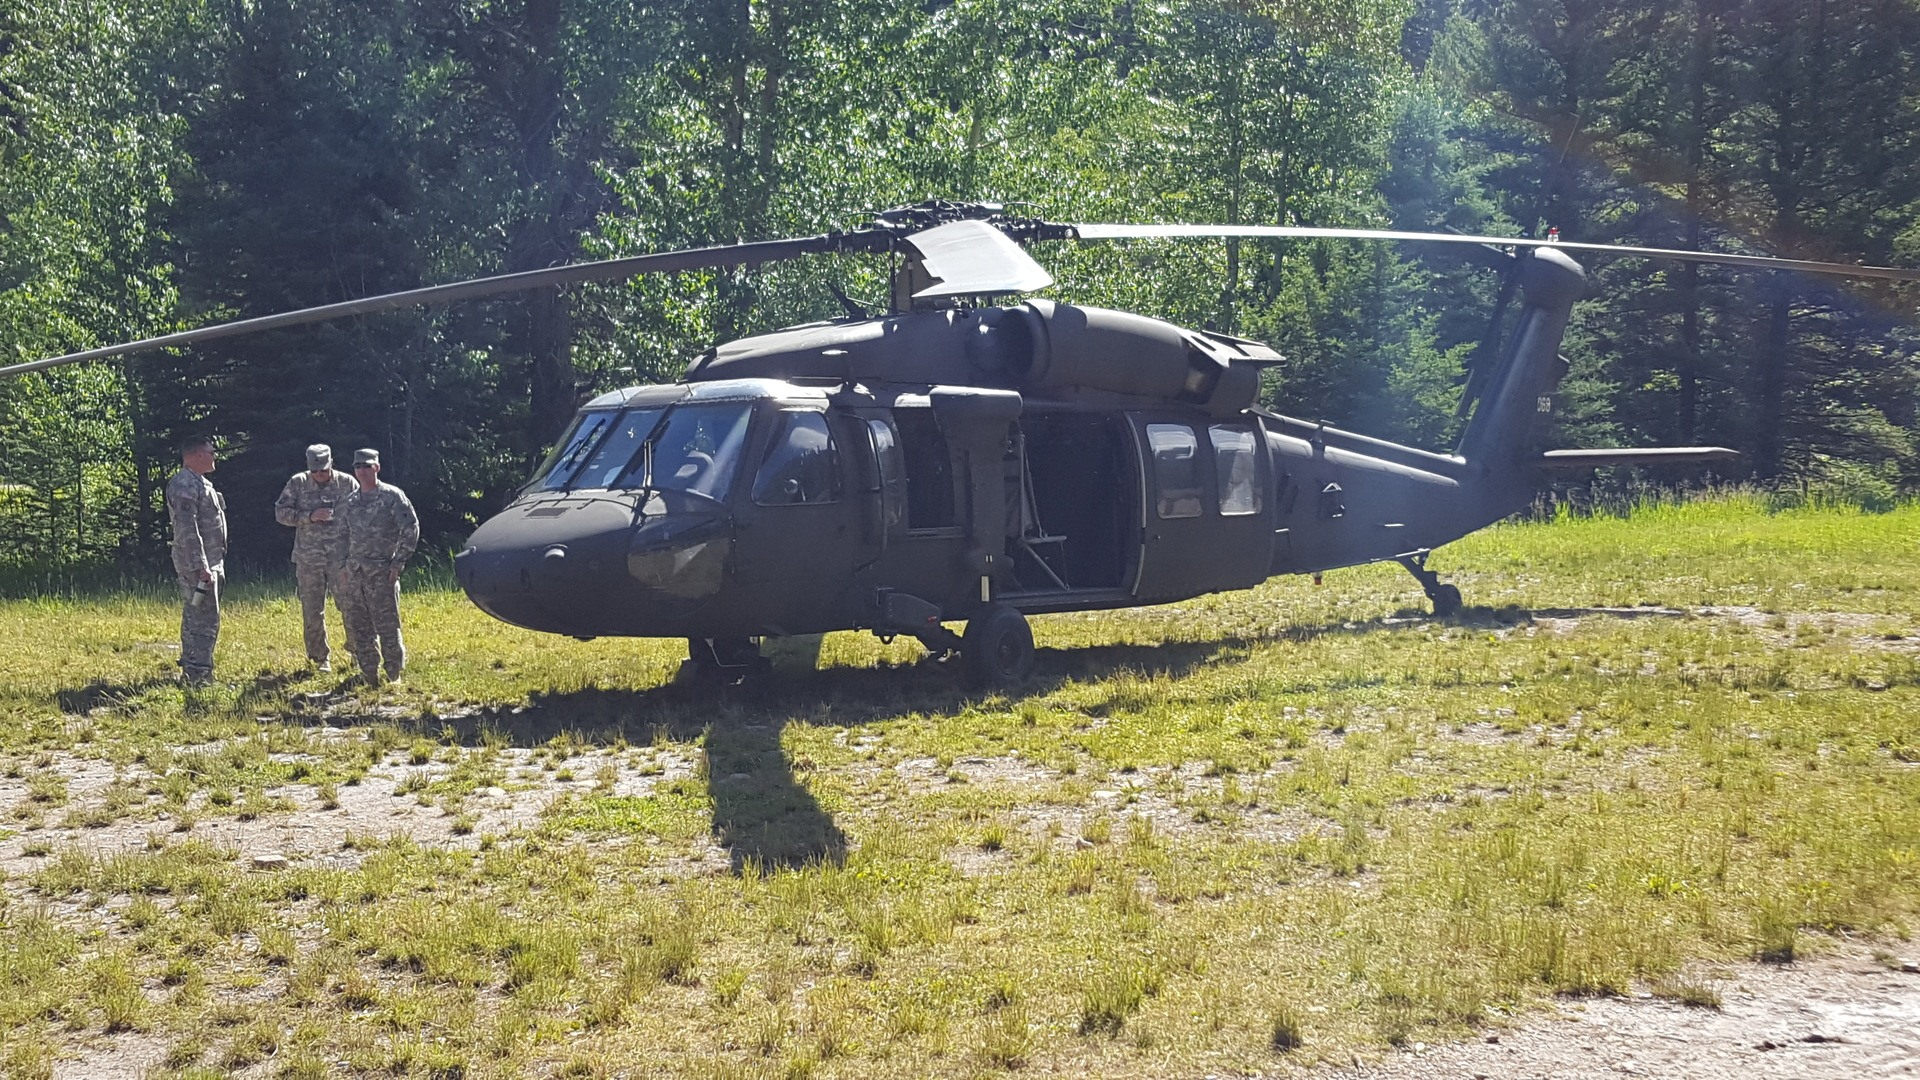 29 - View the Blackhawk Helicopter